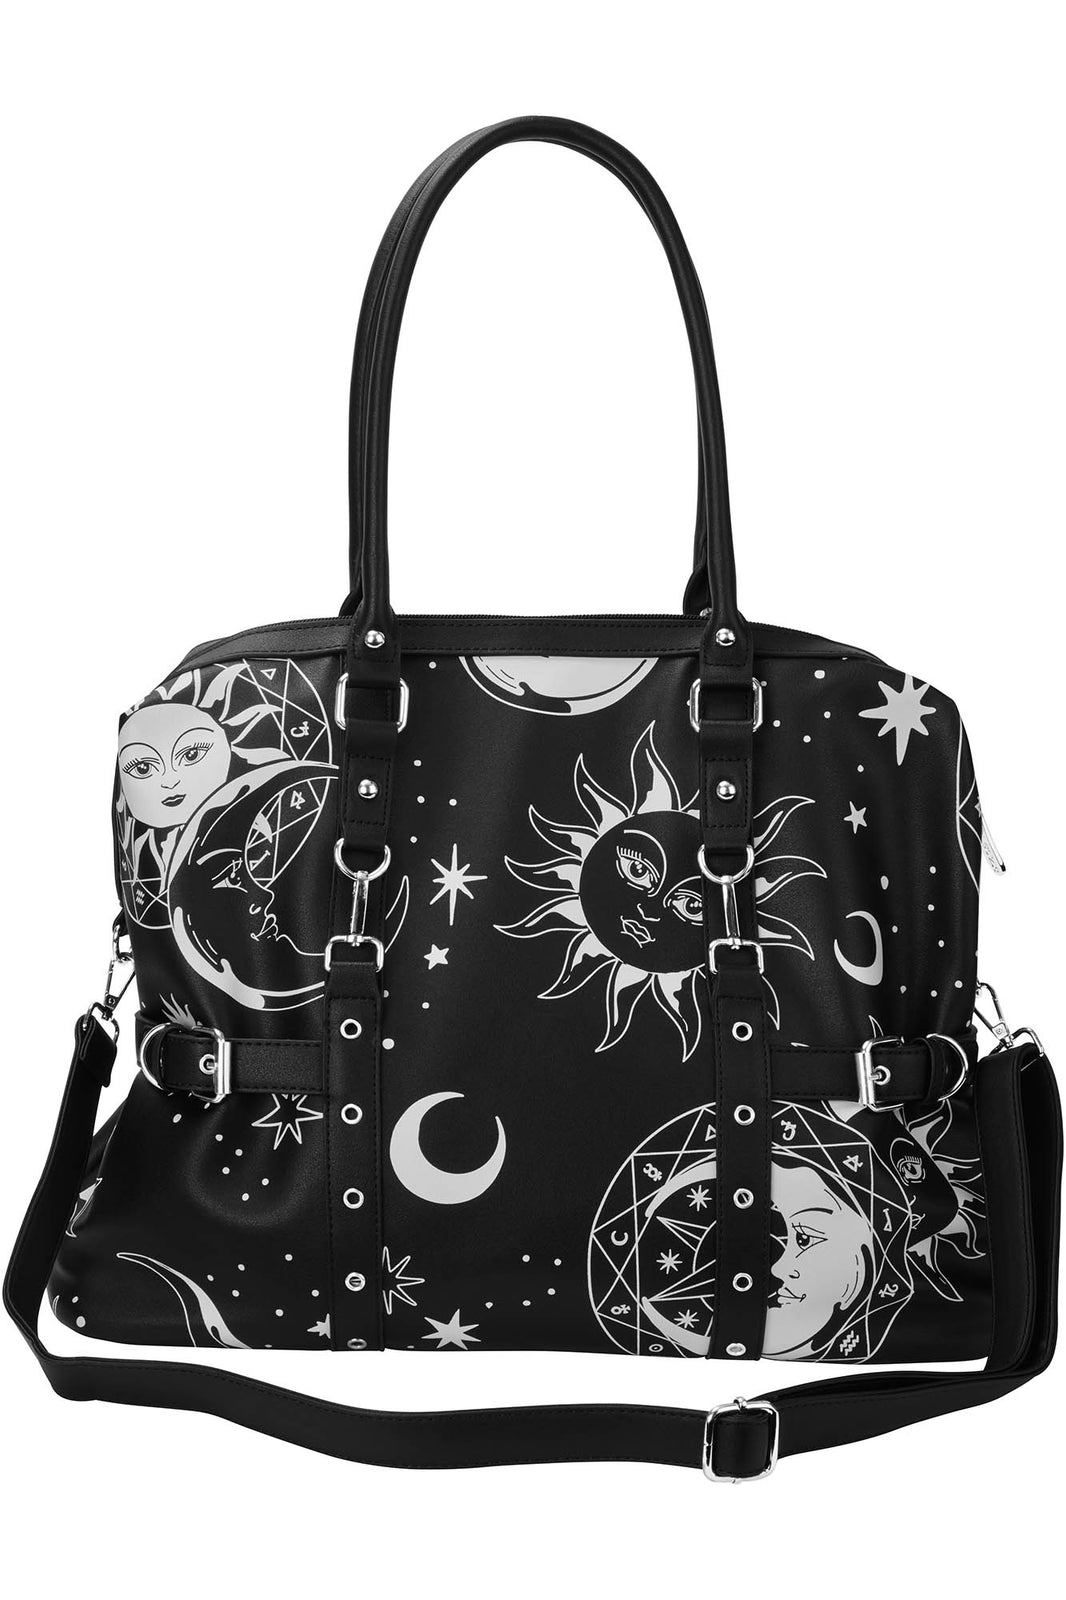 Astral Light Weekend Bag